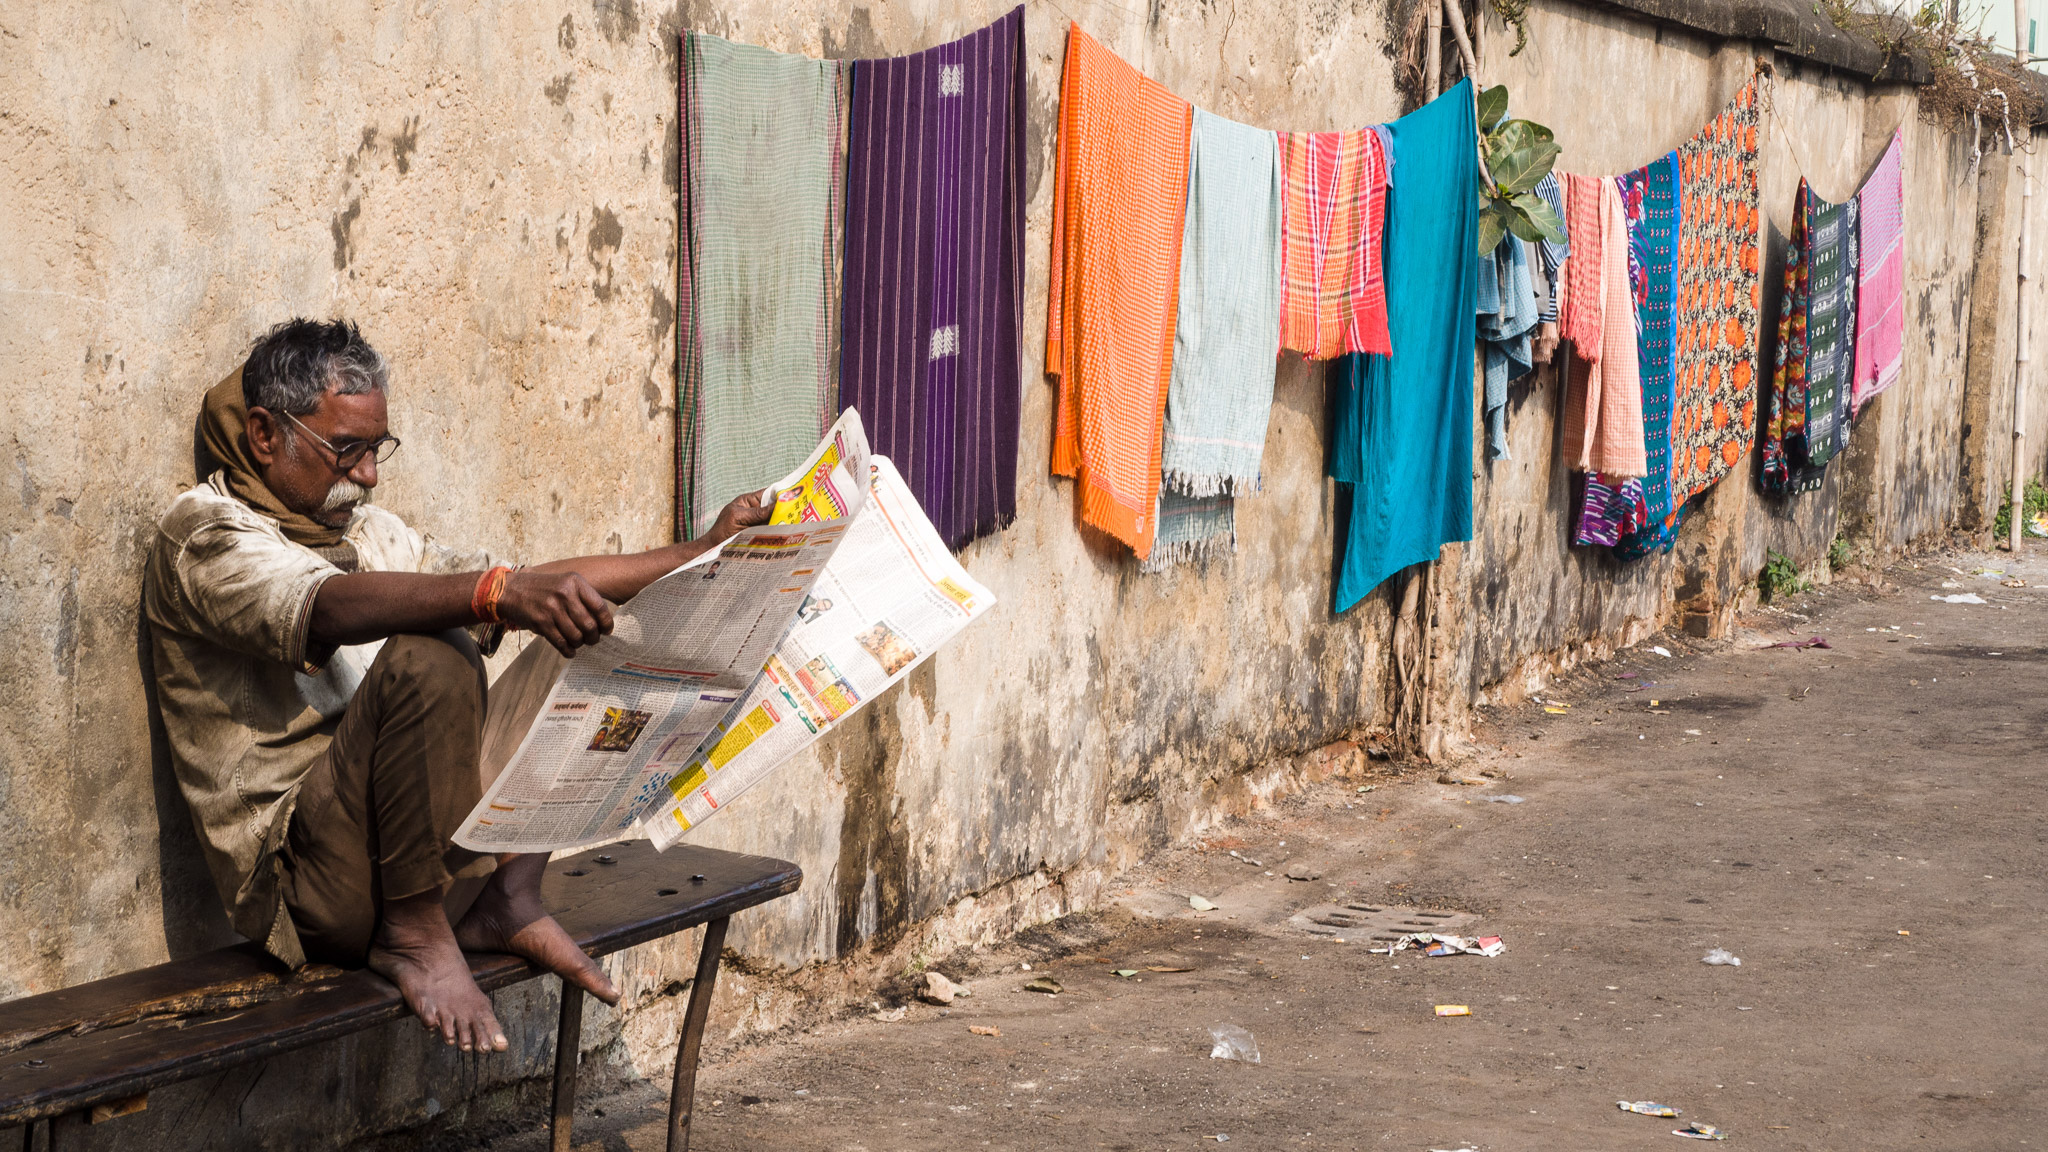 Man_Reading_Newspaper_in_India_Mike_Prince.jpg